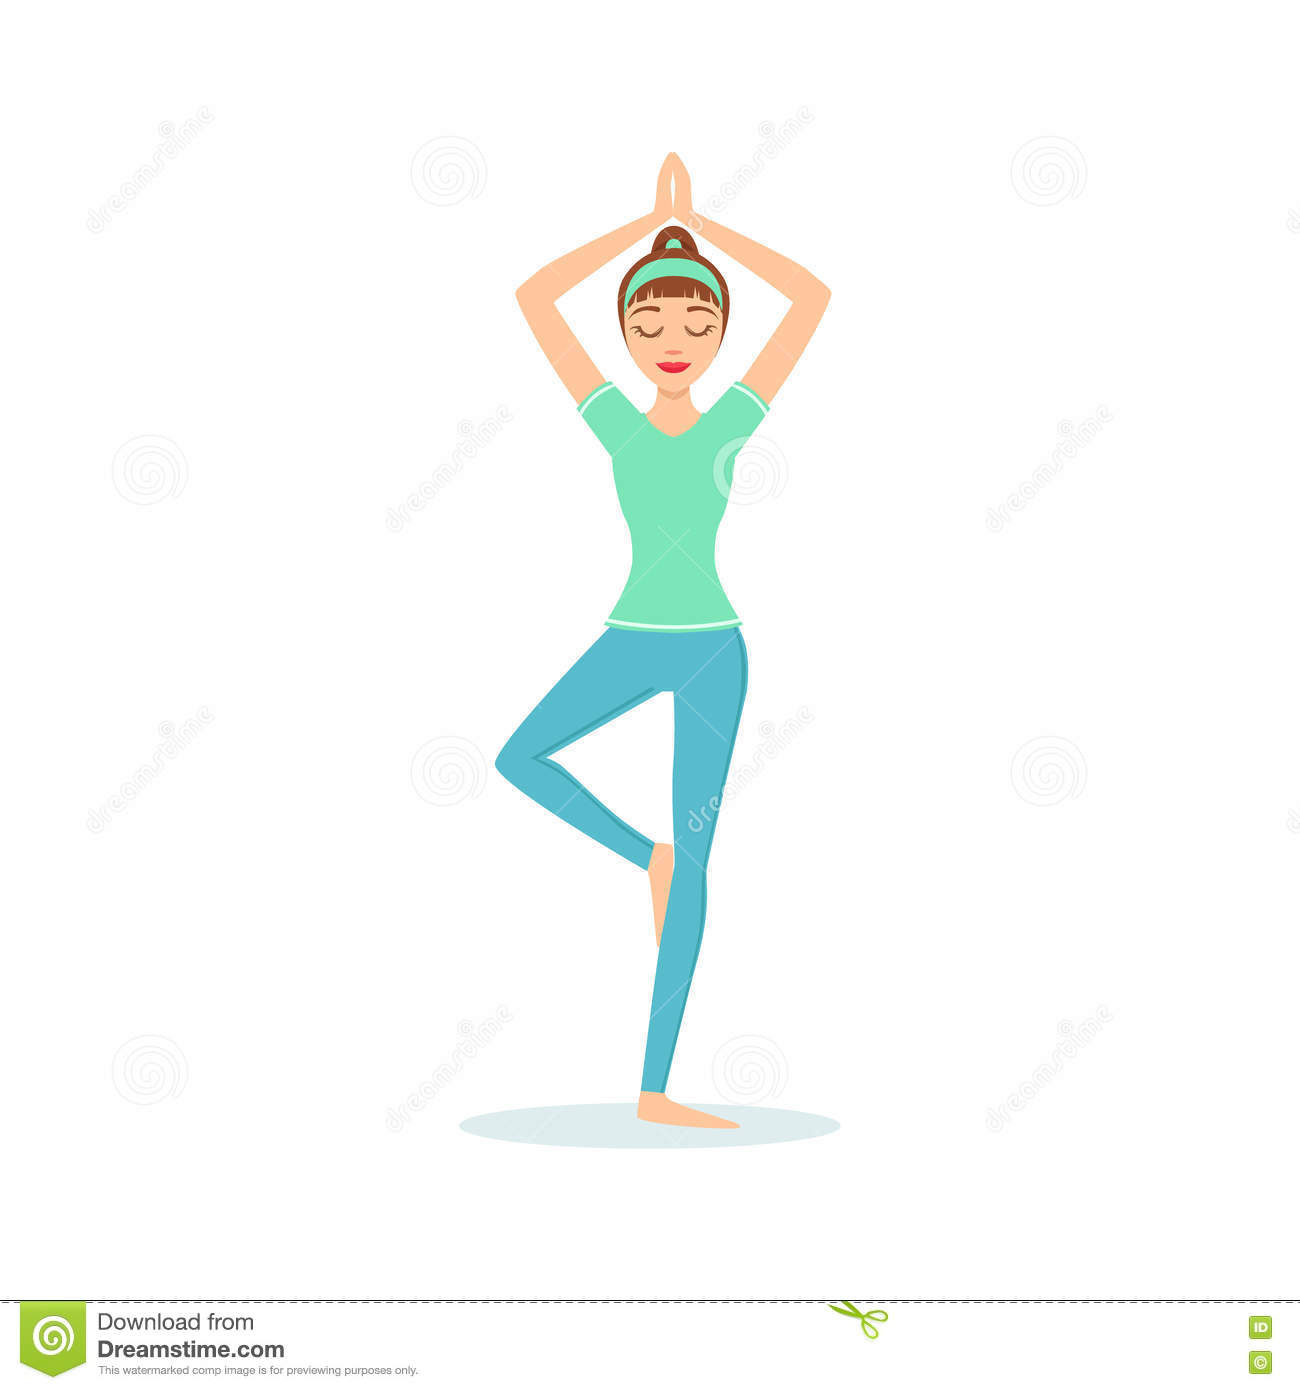 Tree Vriksasana Yoga Pose Demonstrated By The Girl Cartoon Yogi With Ponytail In Blue Sportive Clothing Vector Stock Vector Illustration Of Ancient Isolated 80971324 Added on 05 dec 2017. dreamstime com